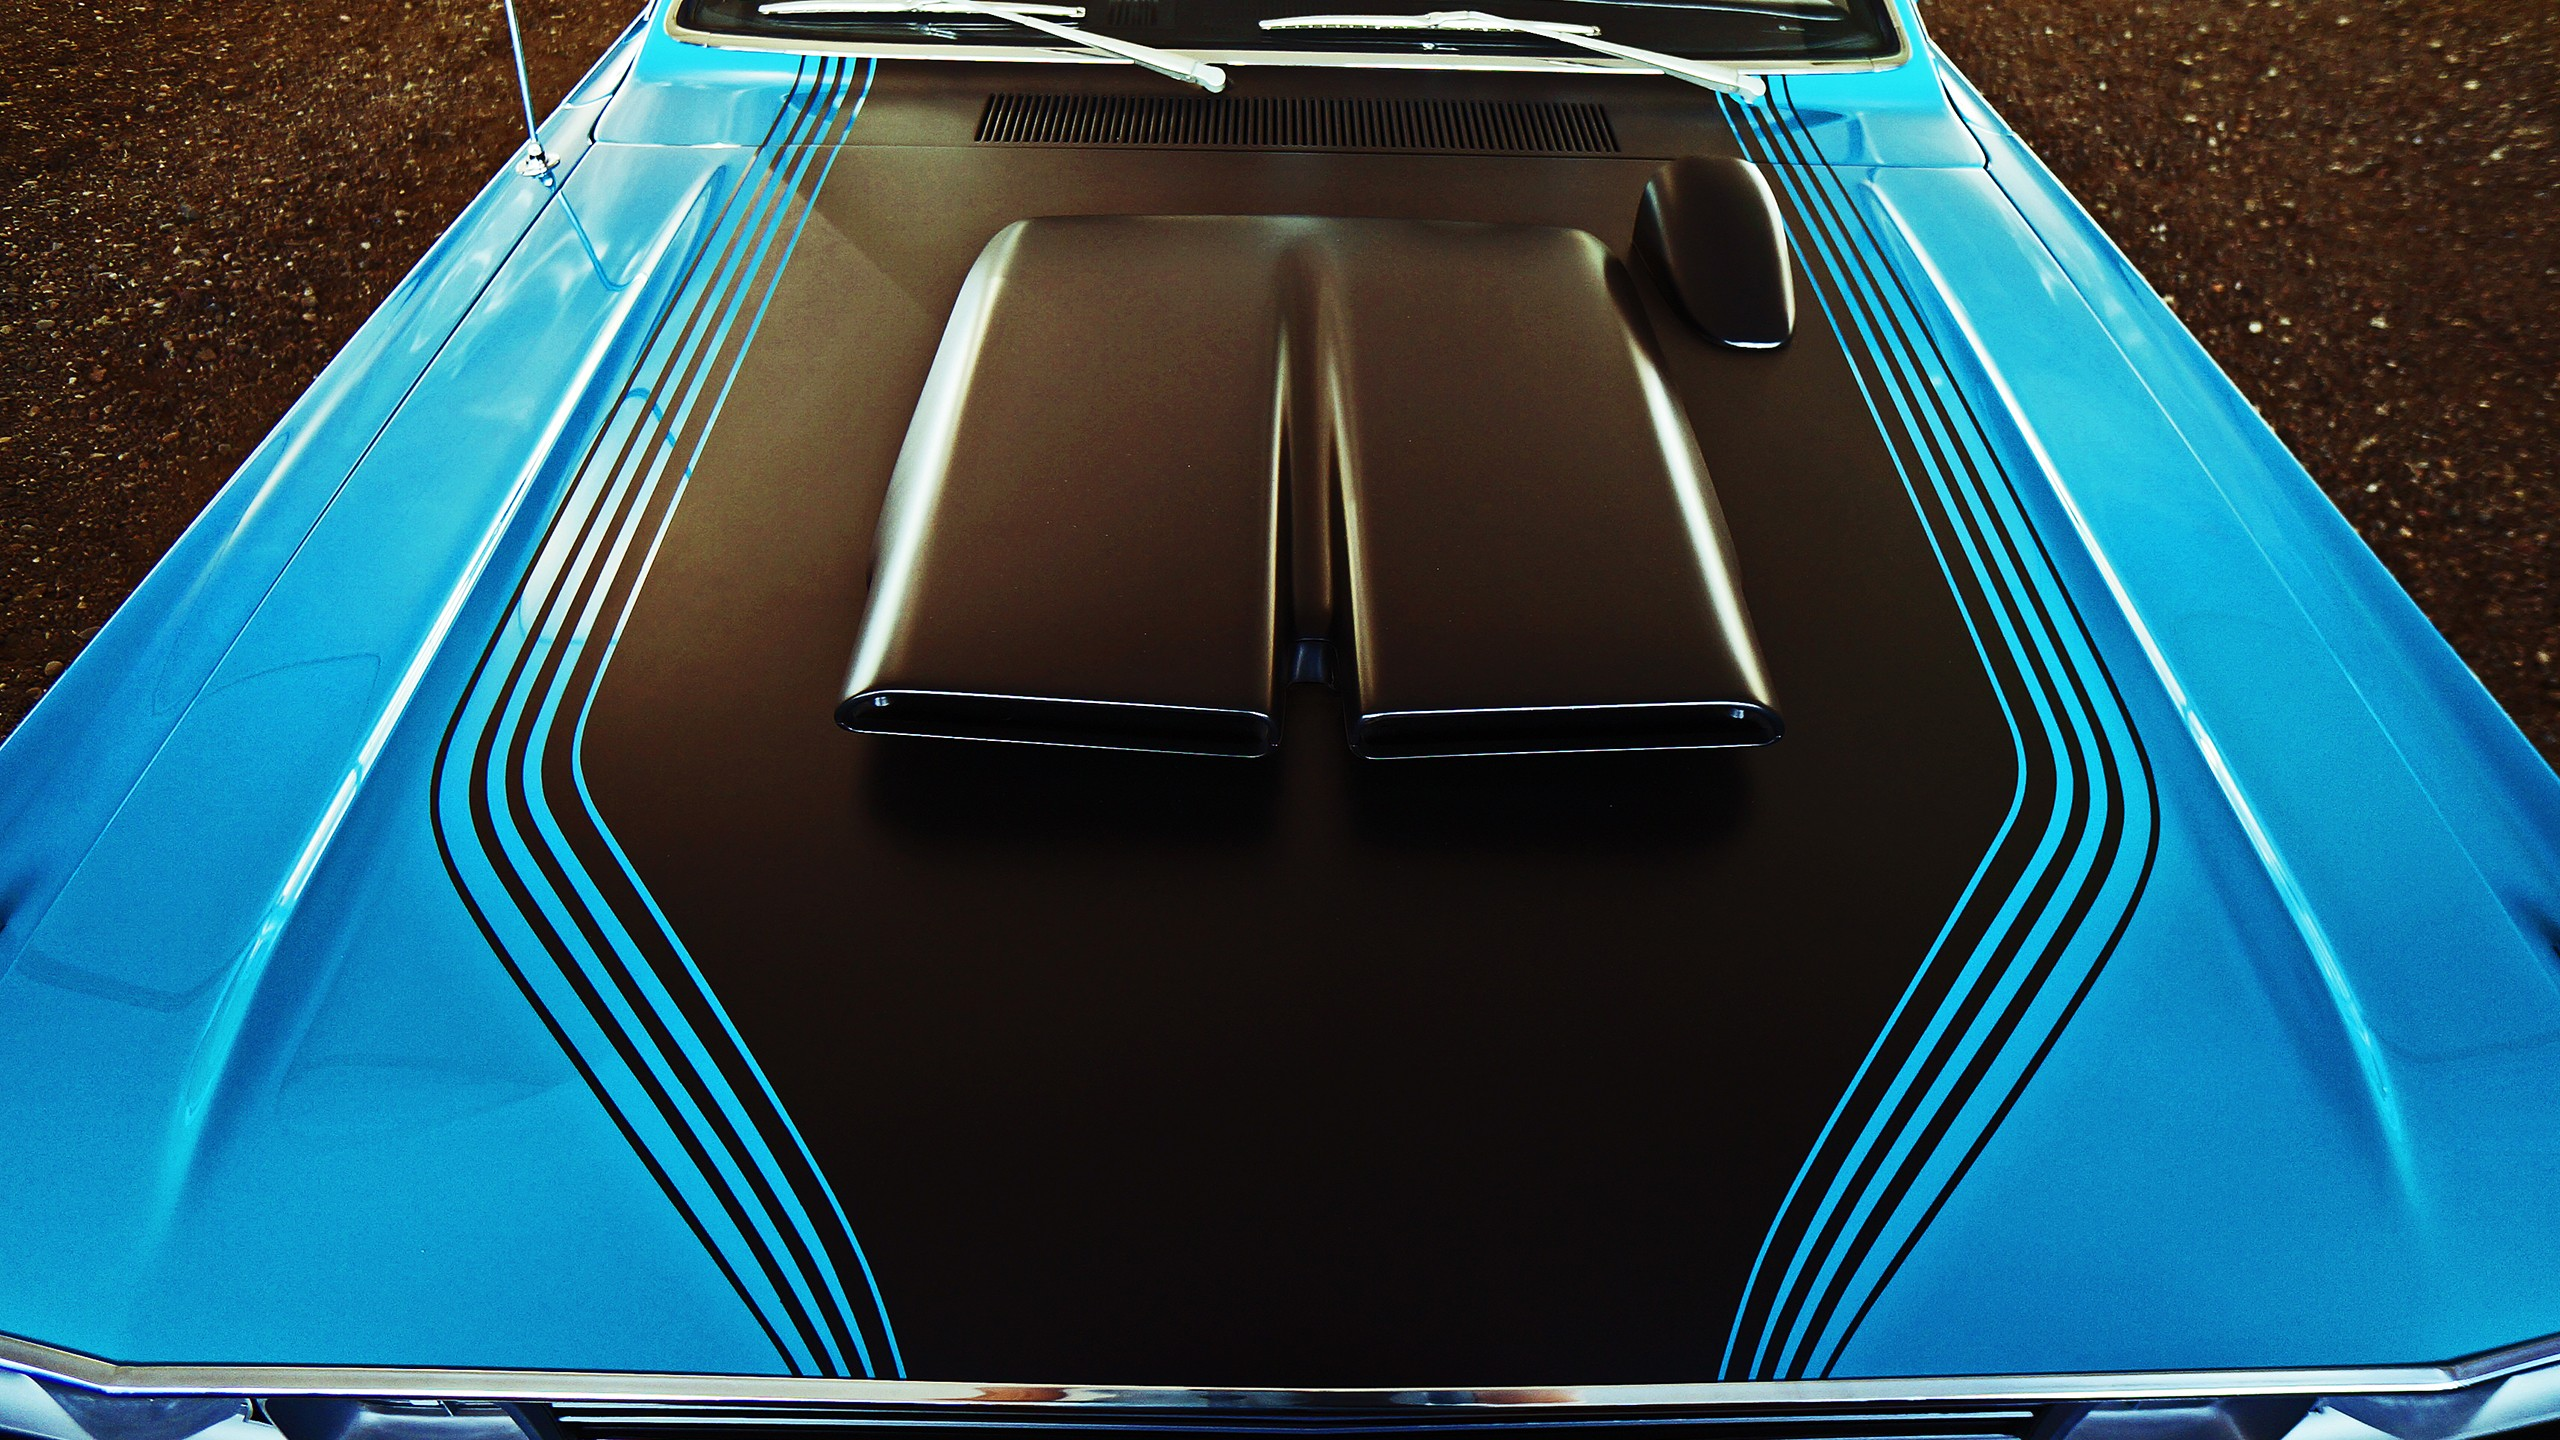 2560x1440 Oldschool Muscle Car Blue Bonnet Youtube Channel Cover